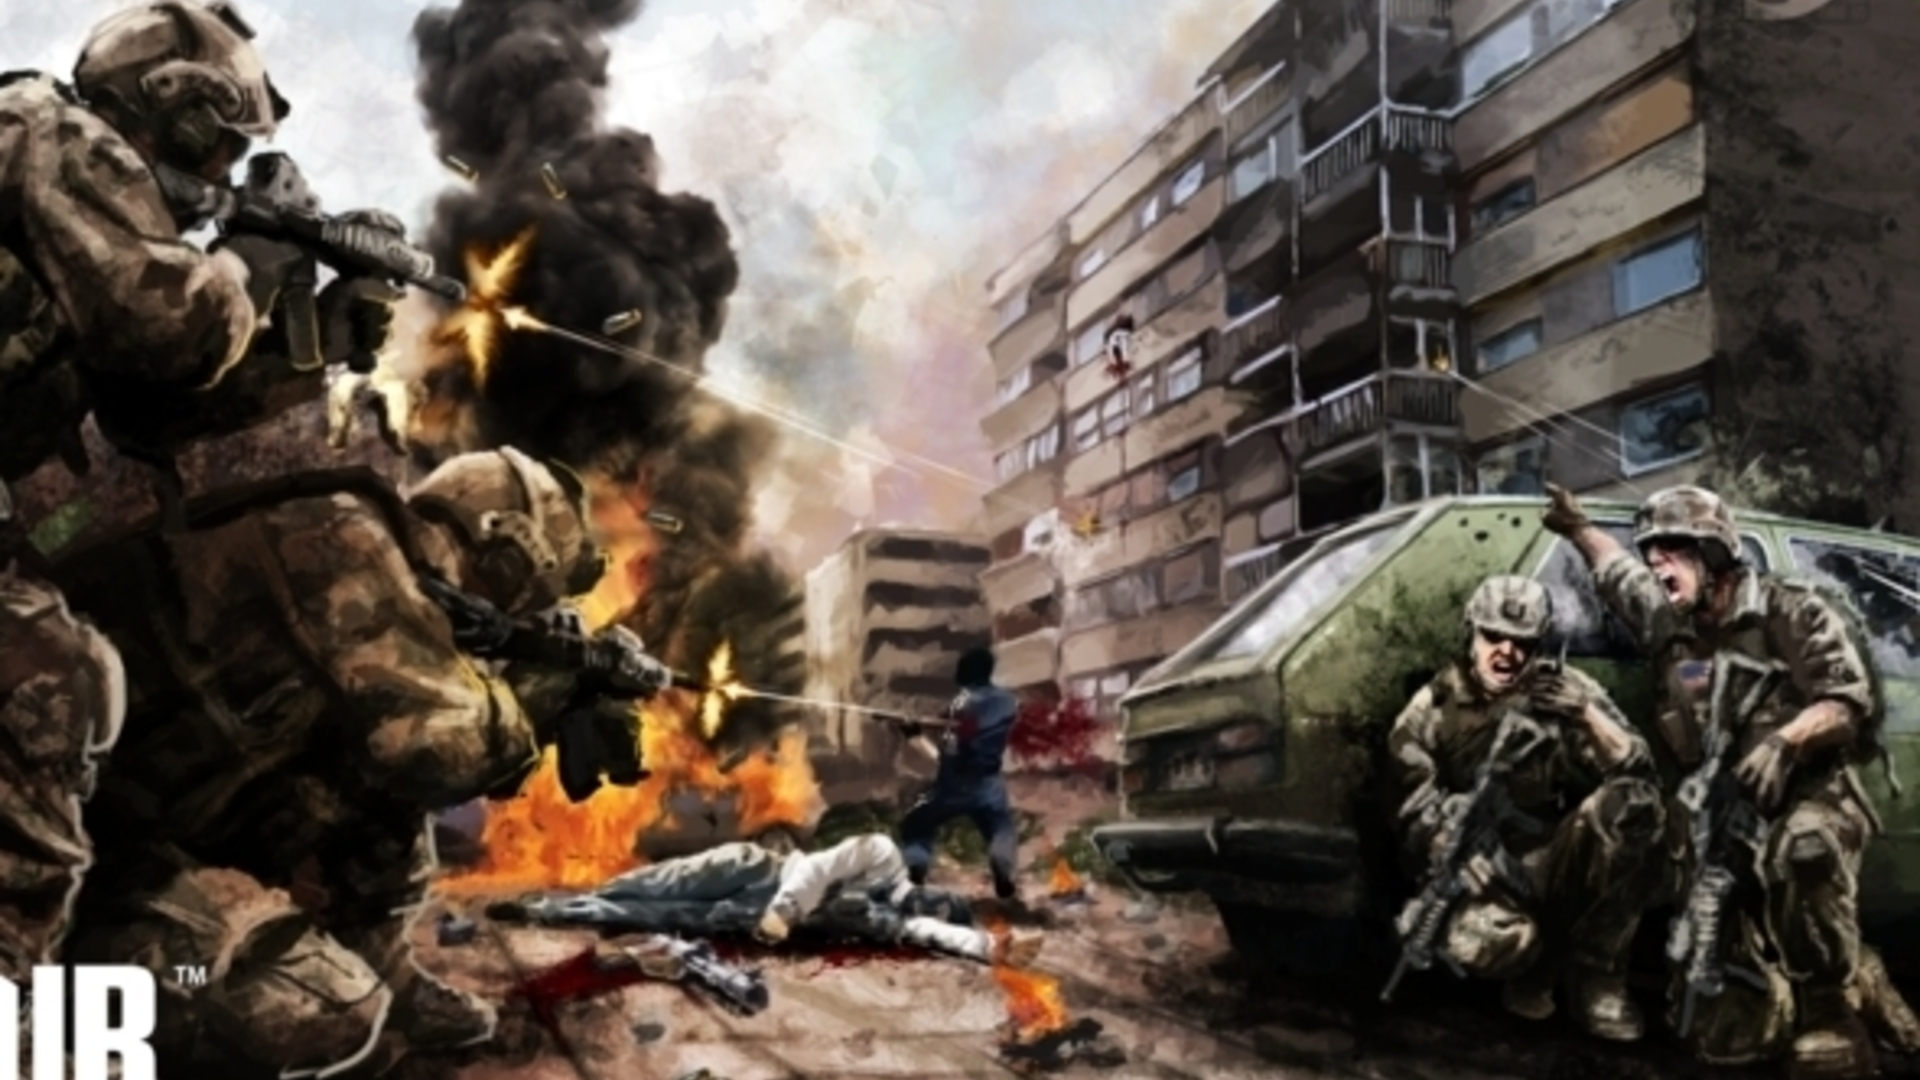 Creative director of original SOCOM games returns with H-Hour for PC